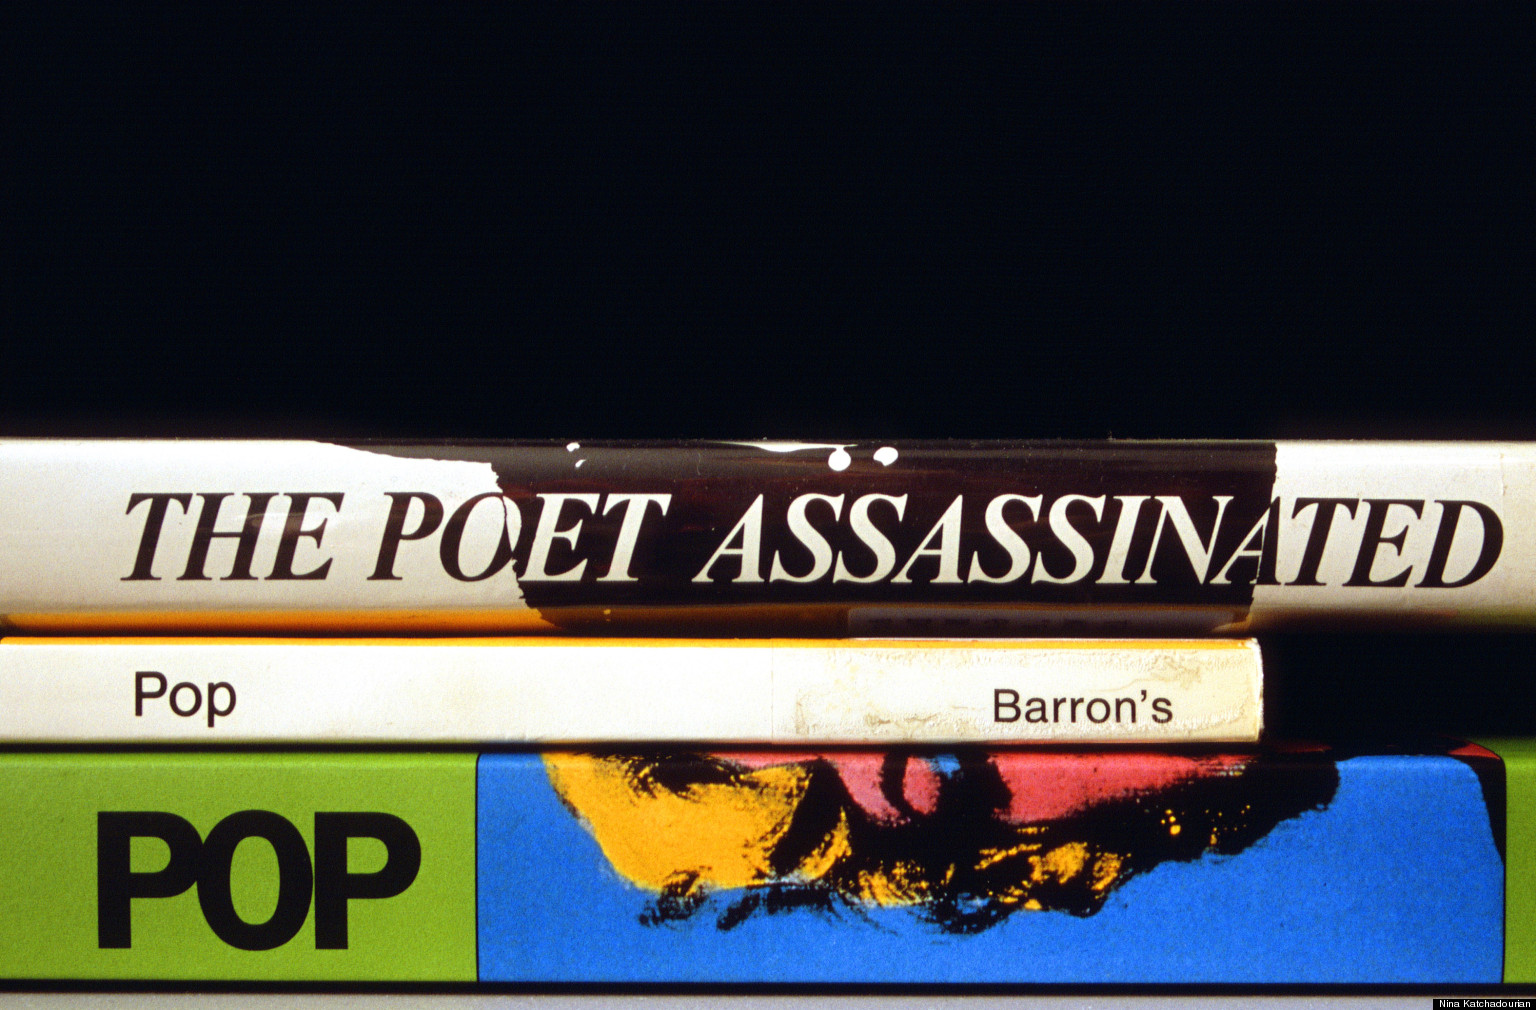 PHOTOS: Stunning Book Spine Poetry